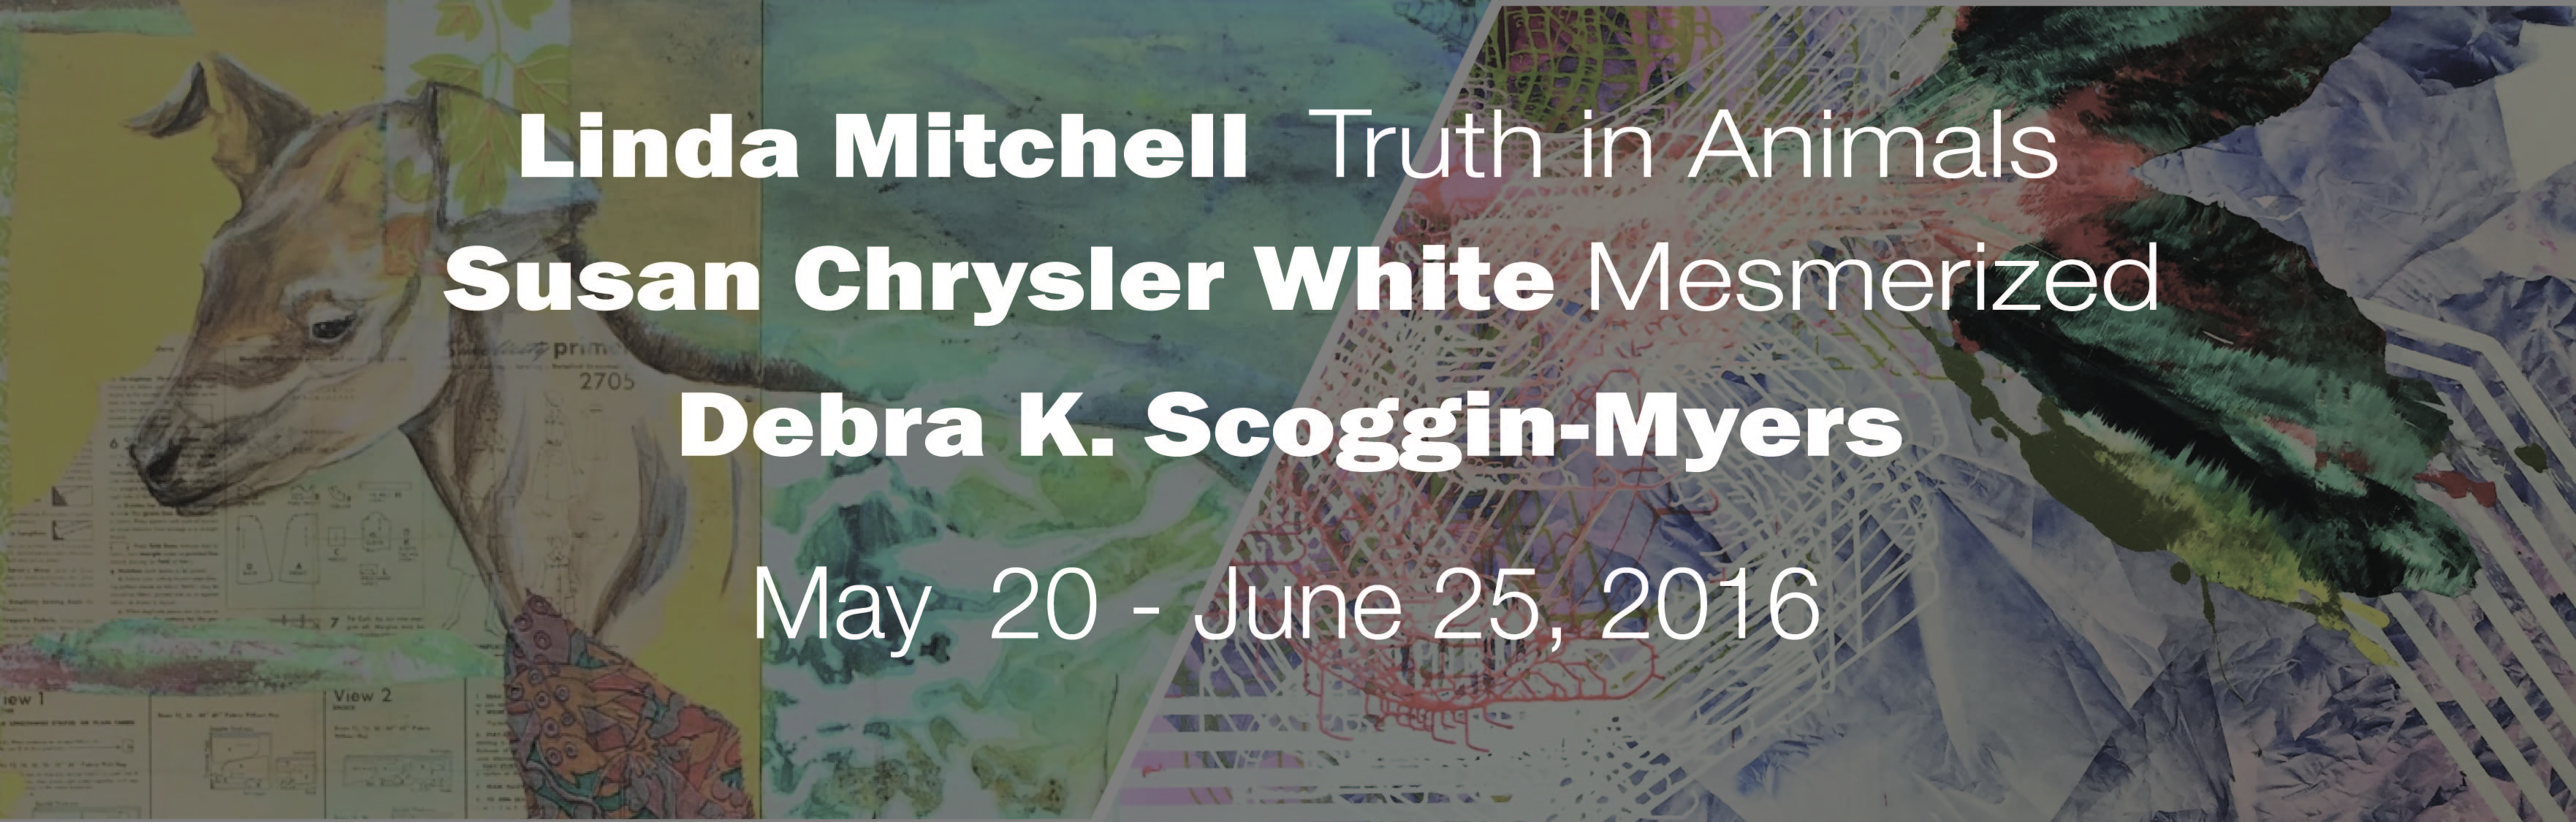 Mitchell-White website